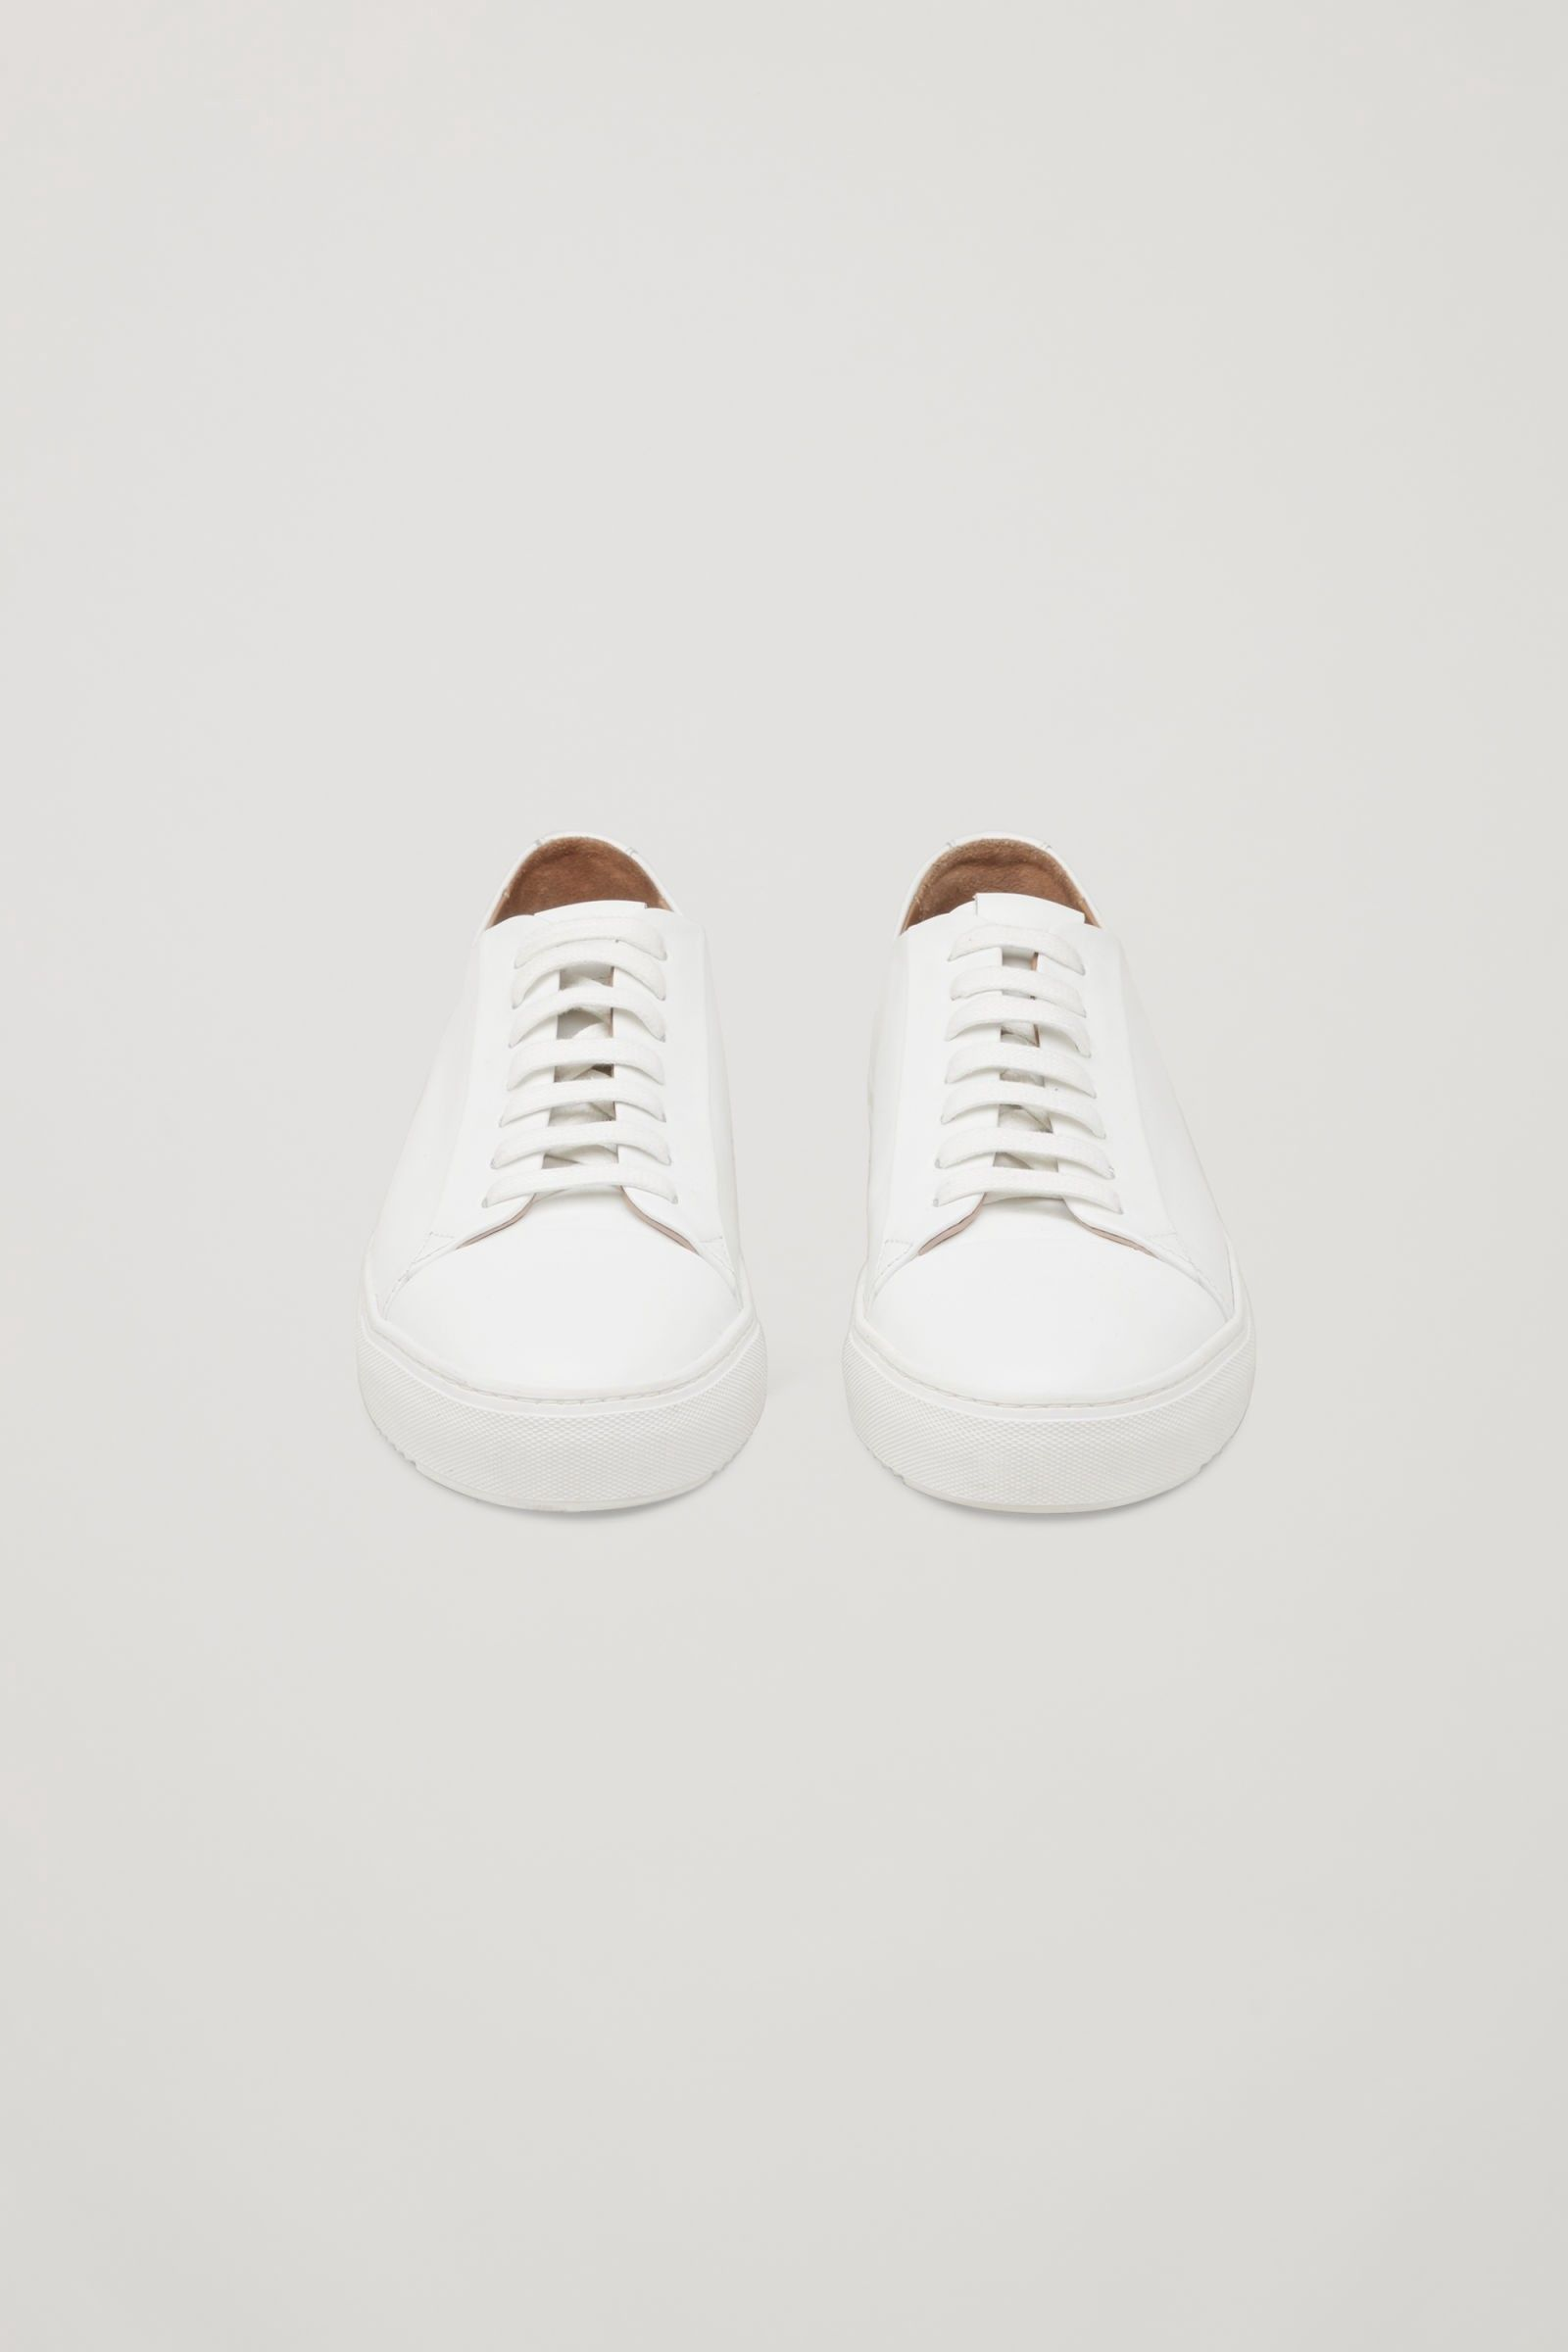 31841c173aa7 THICK-SOLED LEATHER SNEAKERS - white by COS